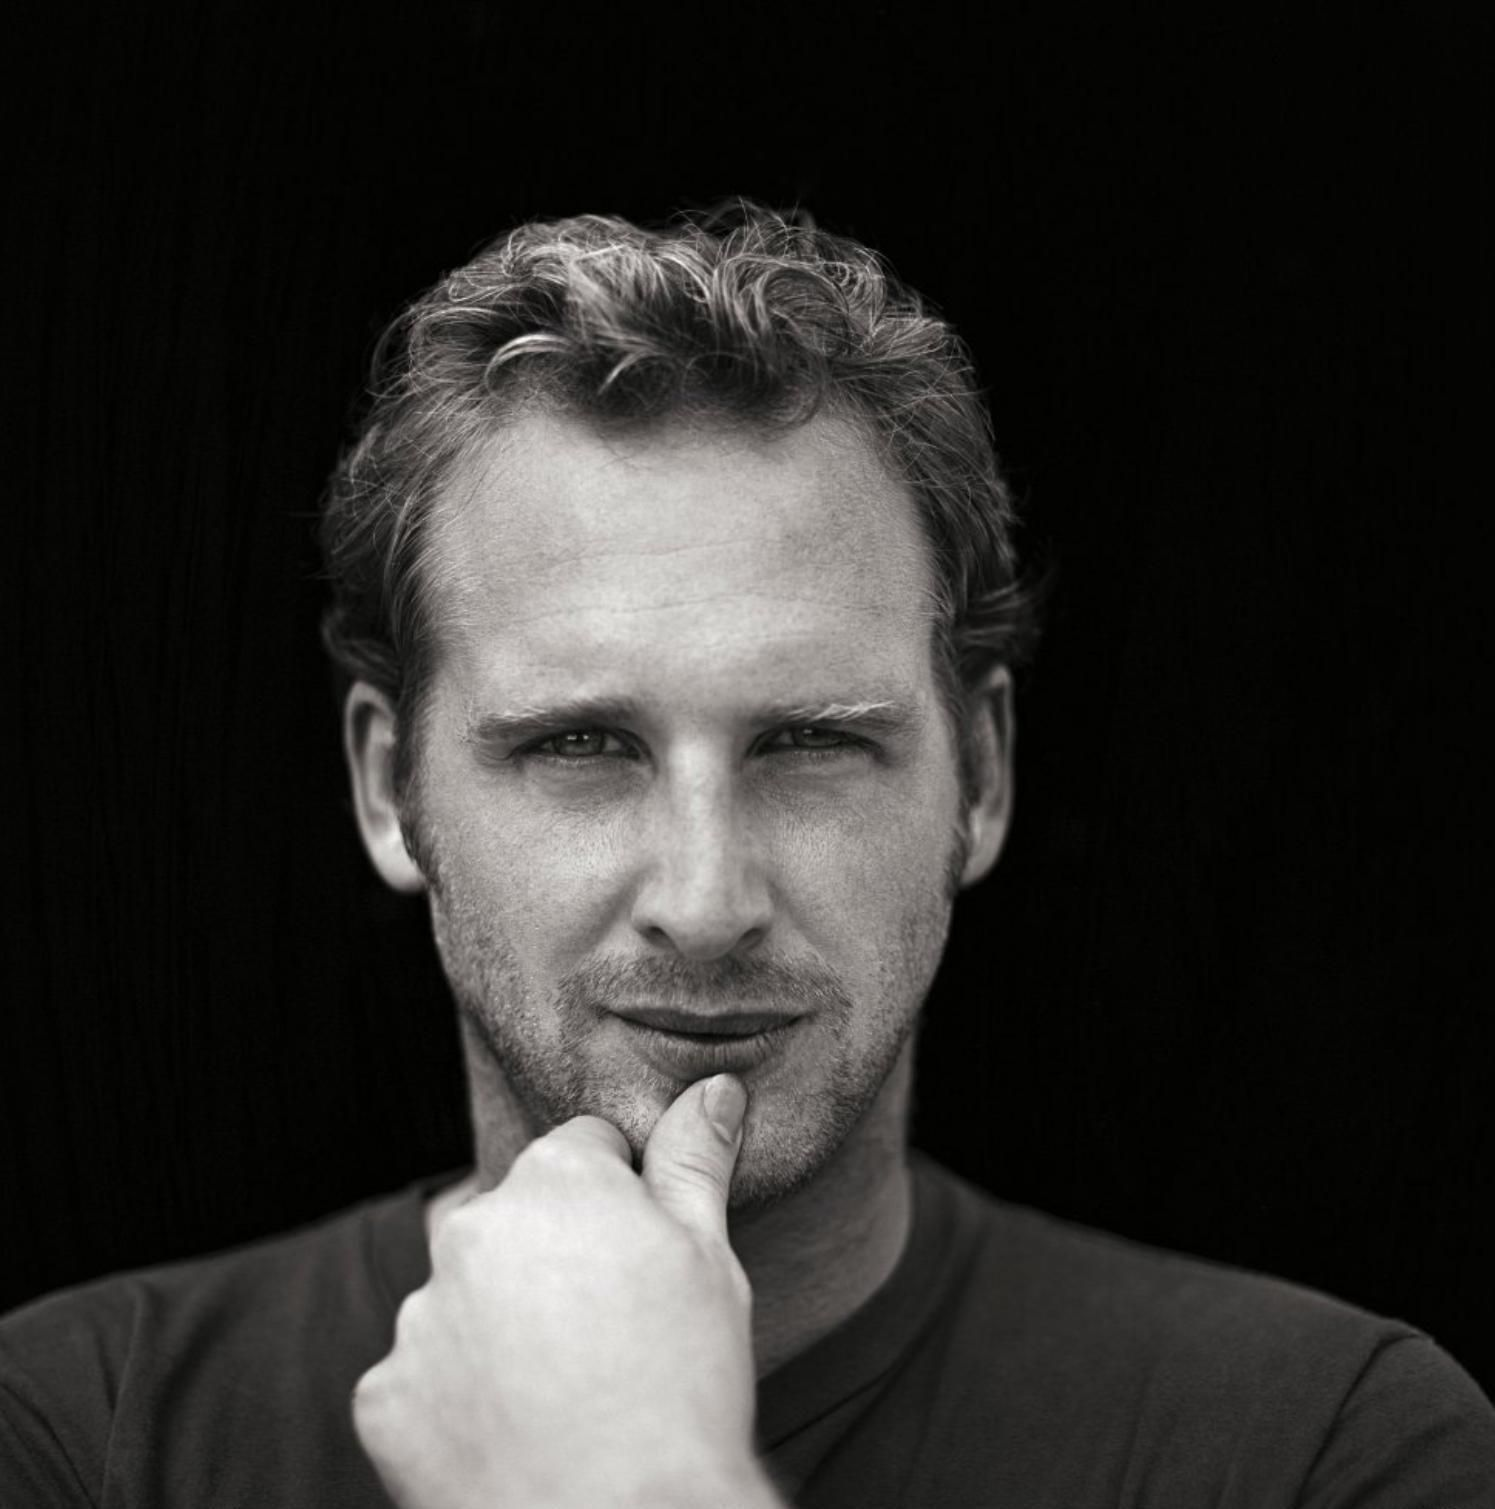 josh lucas wikipediajosh lucas 2016, josh lucas films, josh lucas wife, josh lucas paul newman, josh lucas photos, josh lucas ryan gosling, josh lucas son, josh lucas instagram, josh lucas tumblr, josh lucas bradley cooper, josh lucas shirtless photos, josh lucas wikipedia, josh lucas and reese witherspoon